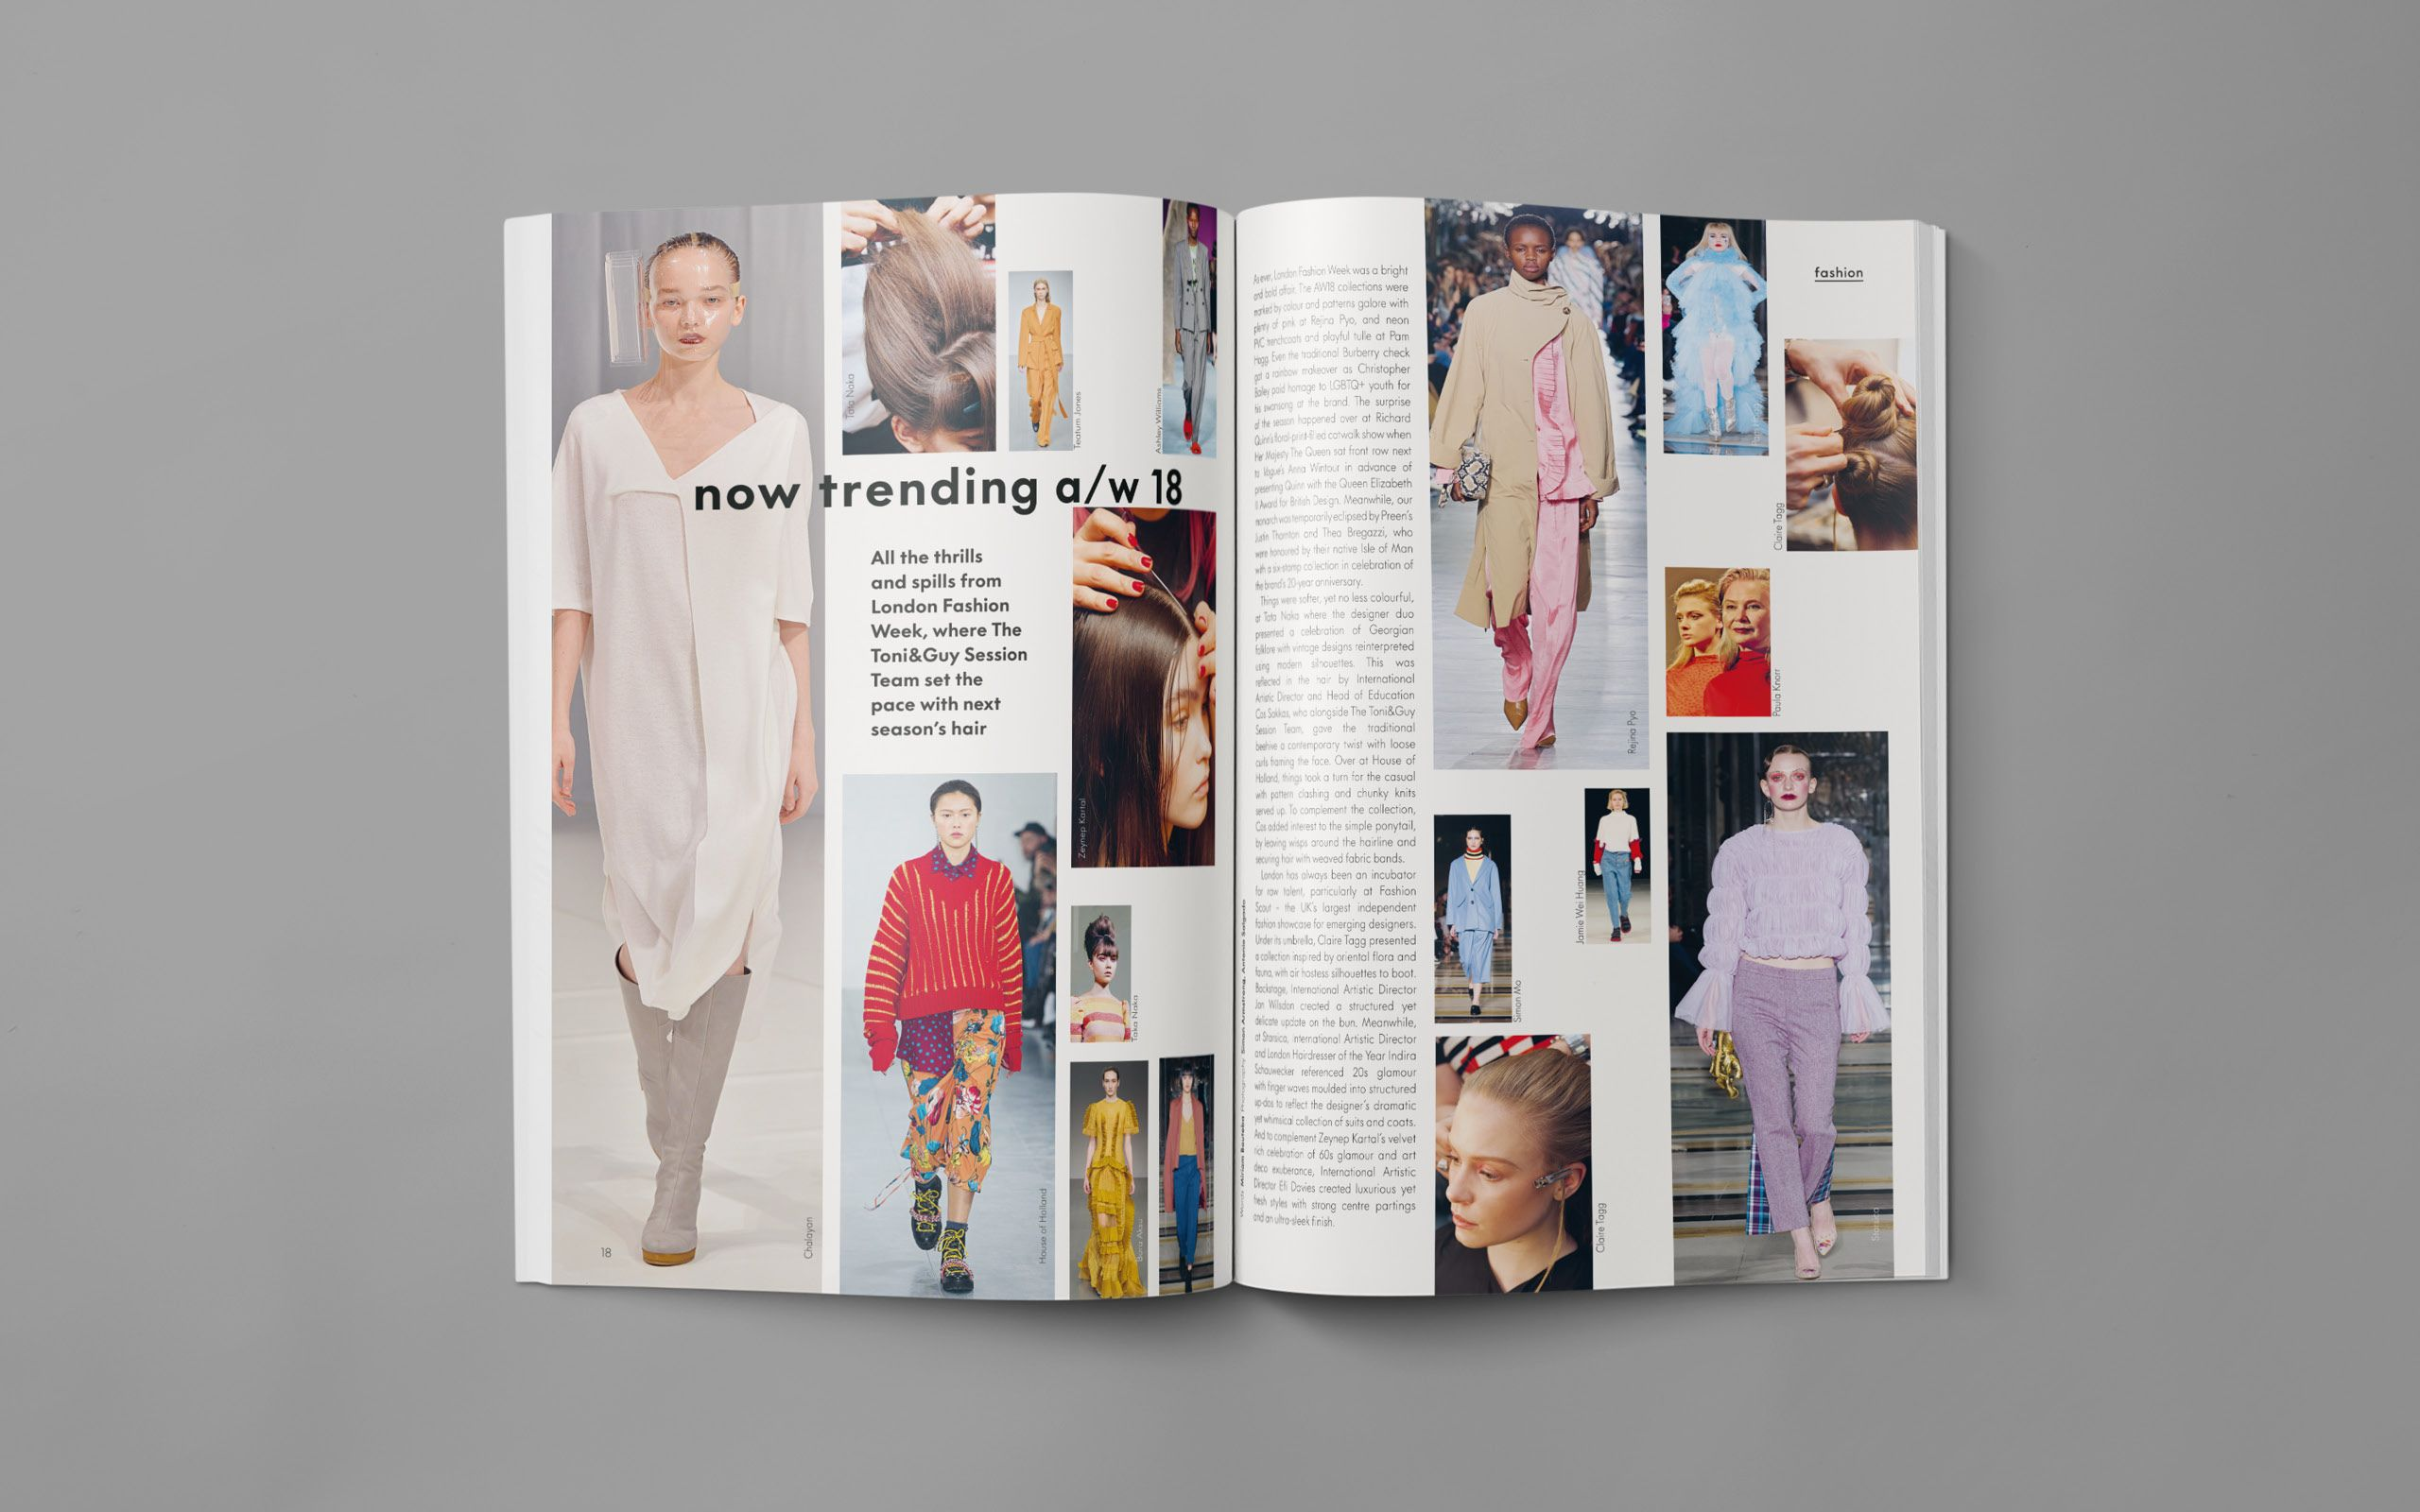 London Fashion Week Trend Roundup Feature Article Magazine Layout Layout Design Layout